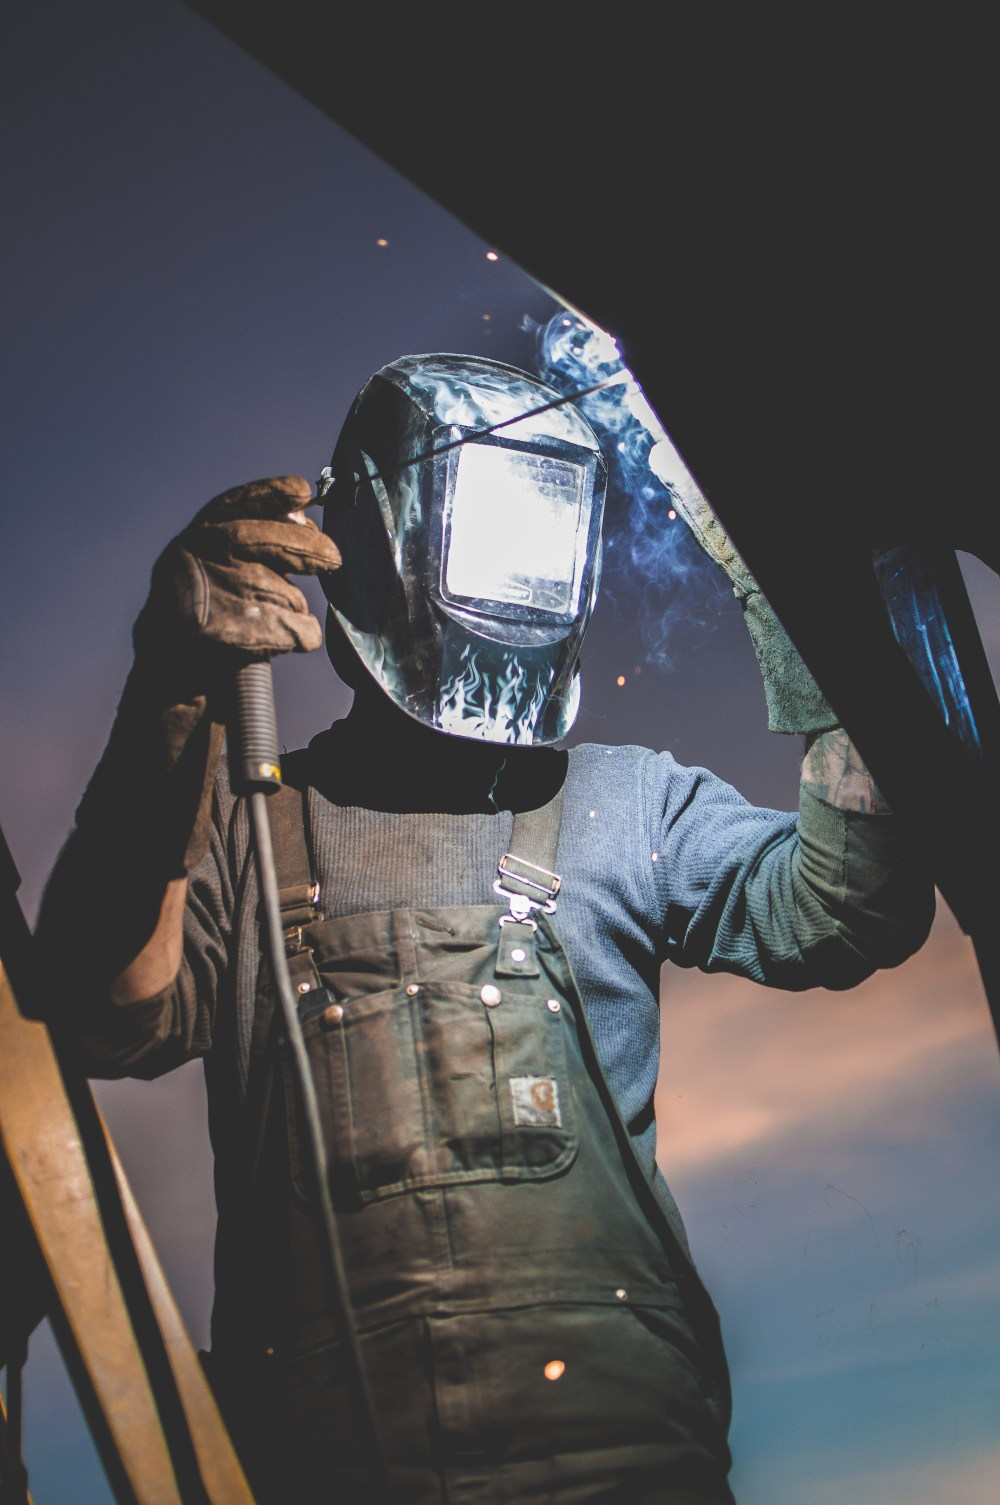 hight resolution of man wearing automatic dark welding helmet